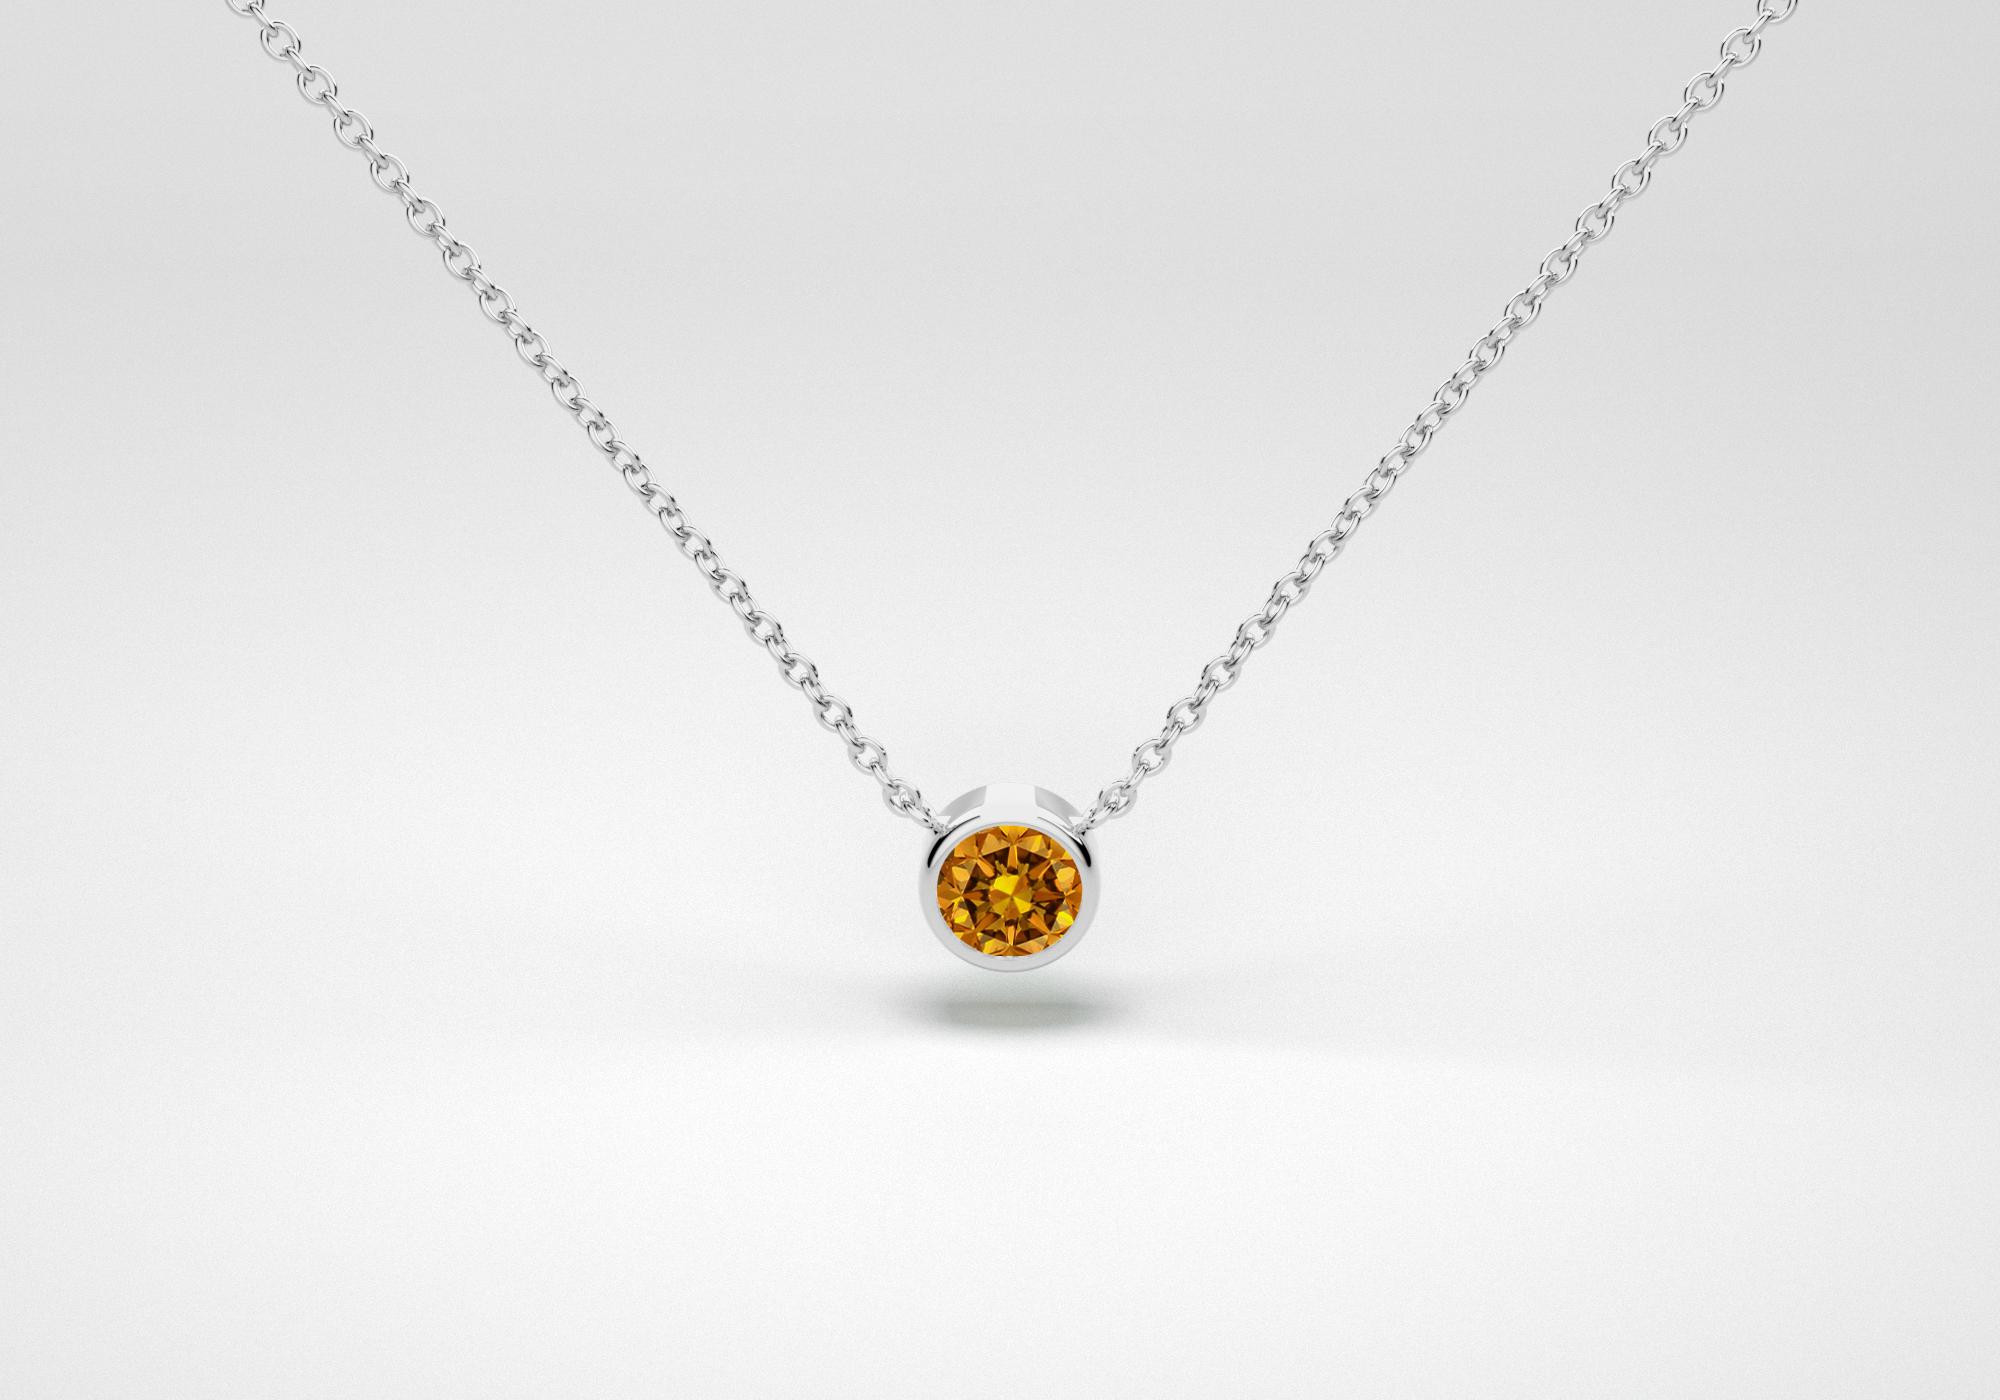 The One Necklace - Cognac - White Gold 18 Kt